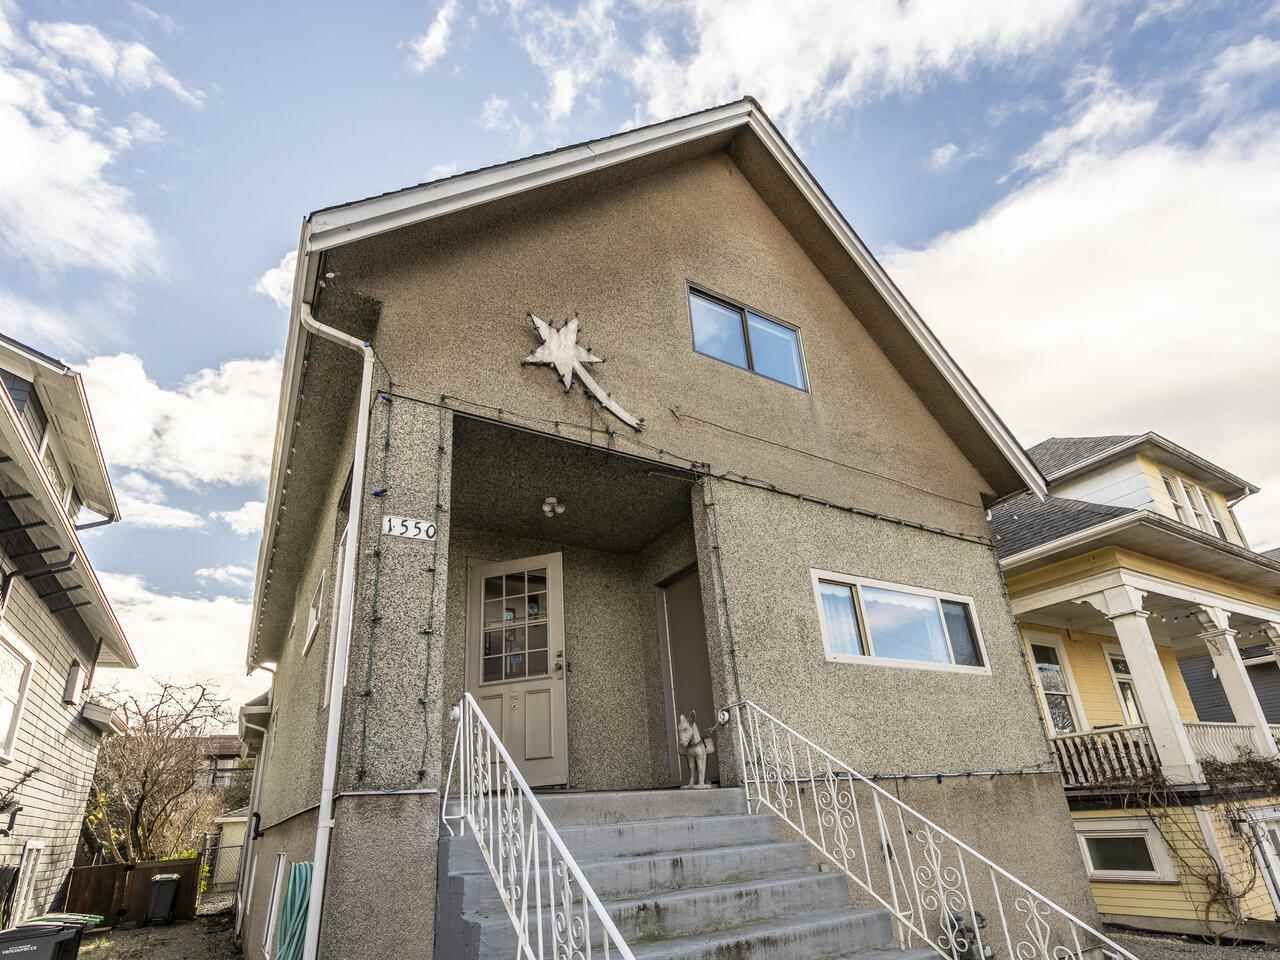 """Main Photo: 1550 GRANT Street in Vancouver: Grandview Woodland House for sale in """"GRANVIEW"""" (Vancouver East)  : MLS®# R2539844"""